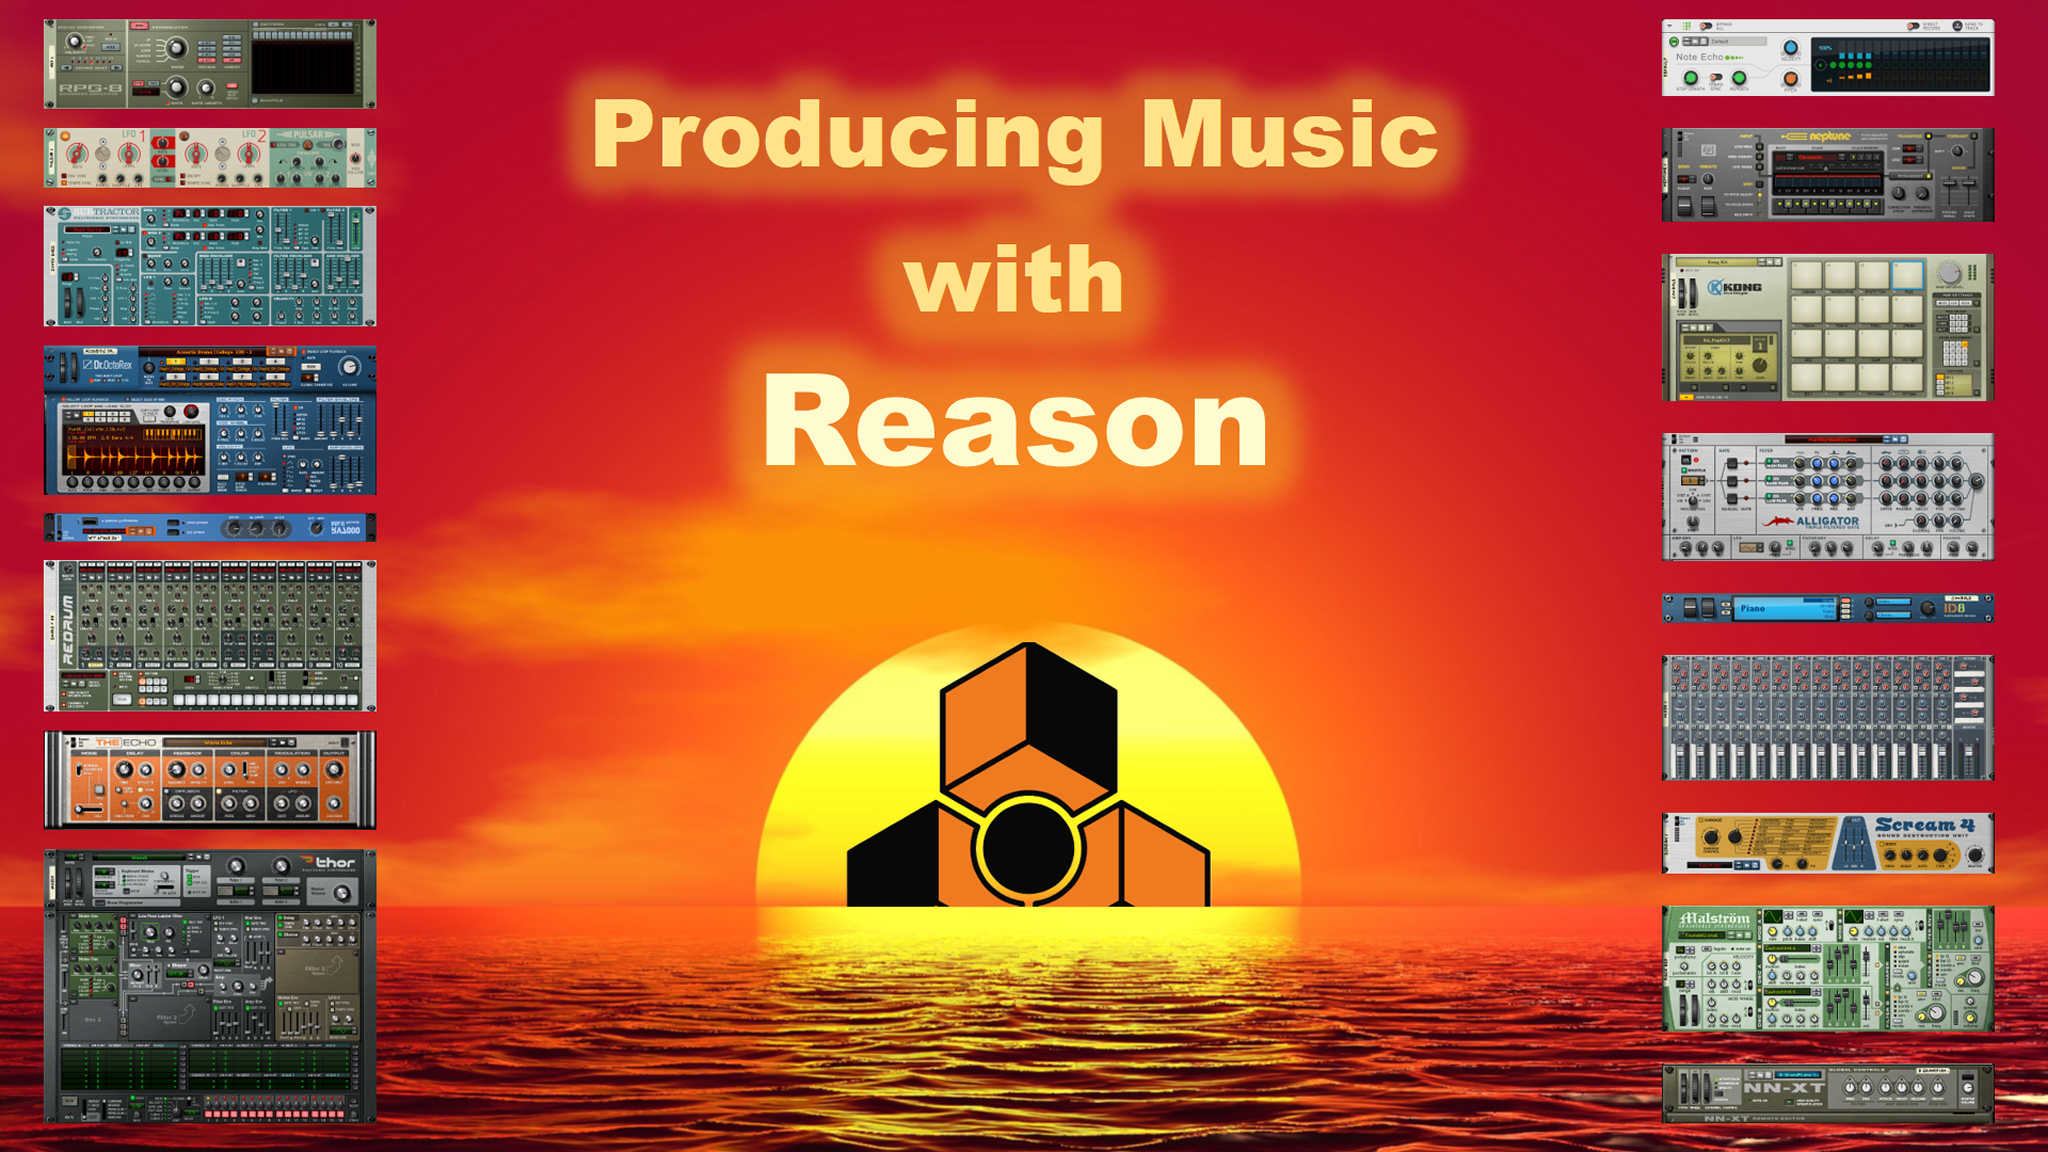 Producing Music with Reason